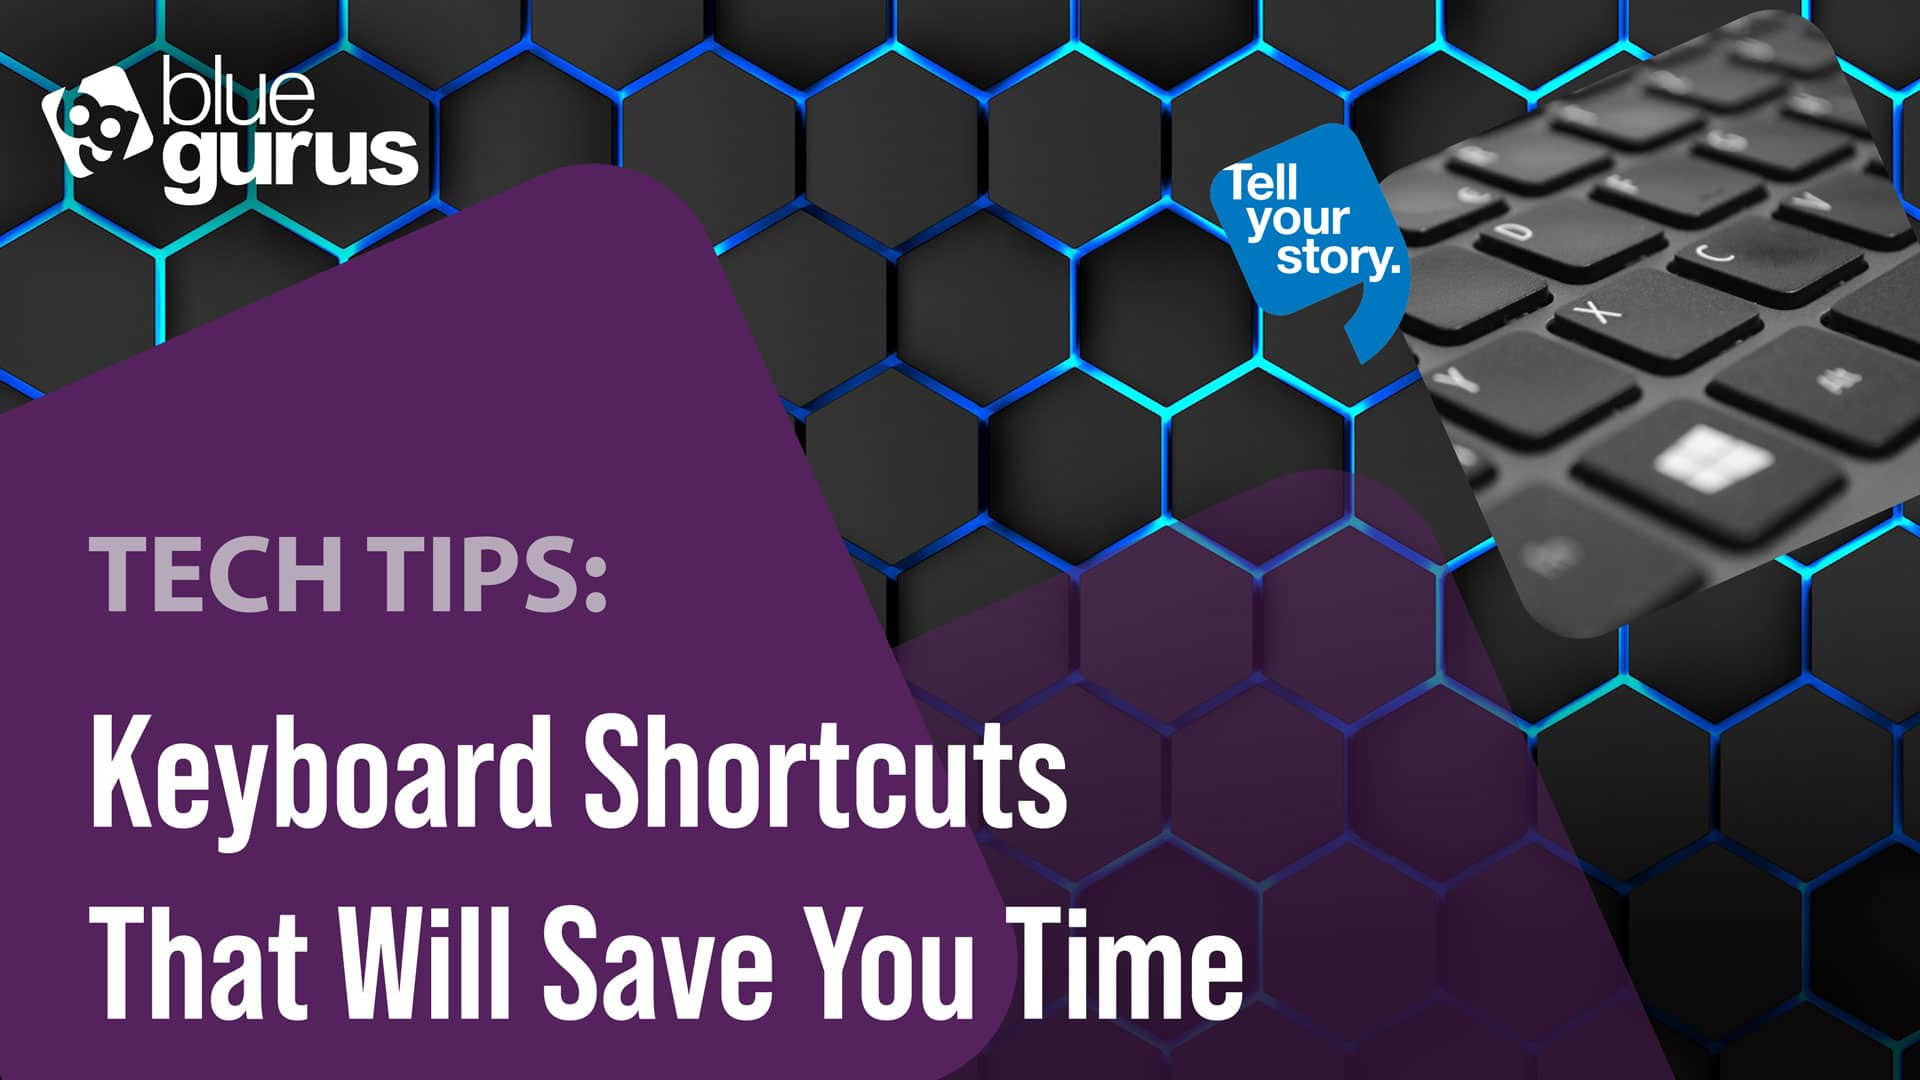 Tech Tip: Keyboard Shortcuts That Will Save You Time